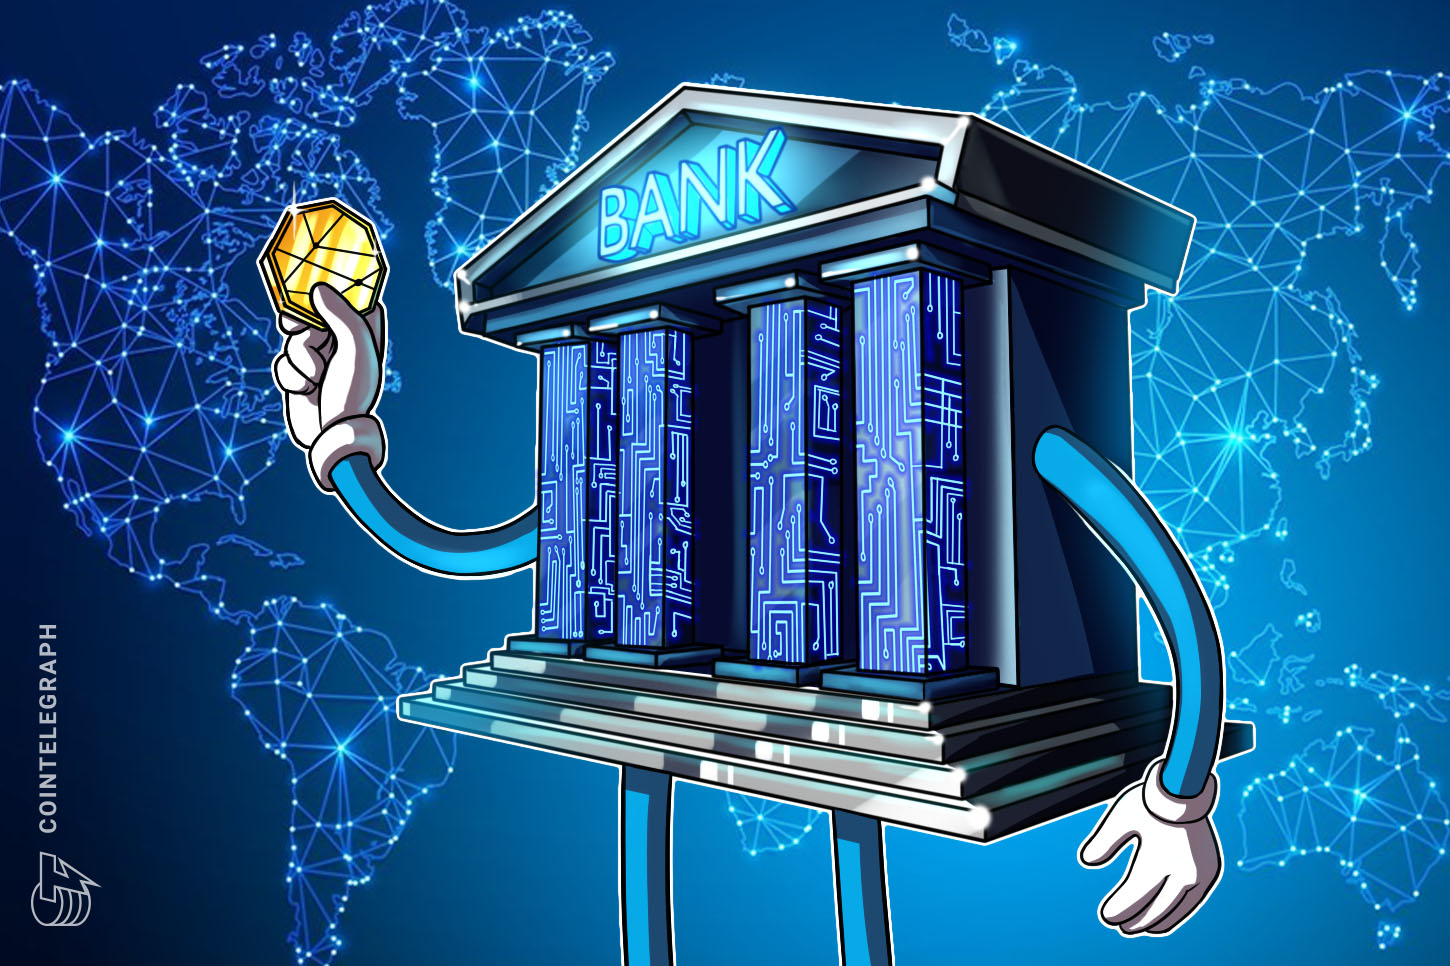 Report: Vietnam's PM asks State Bank to trial digital currency on blockchain